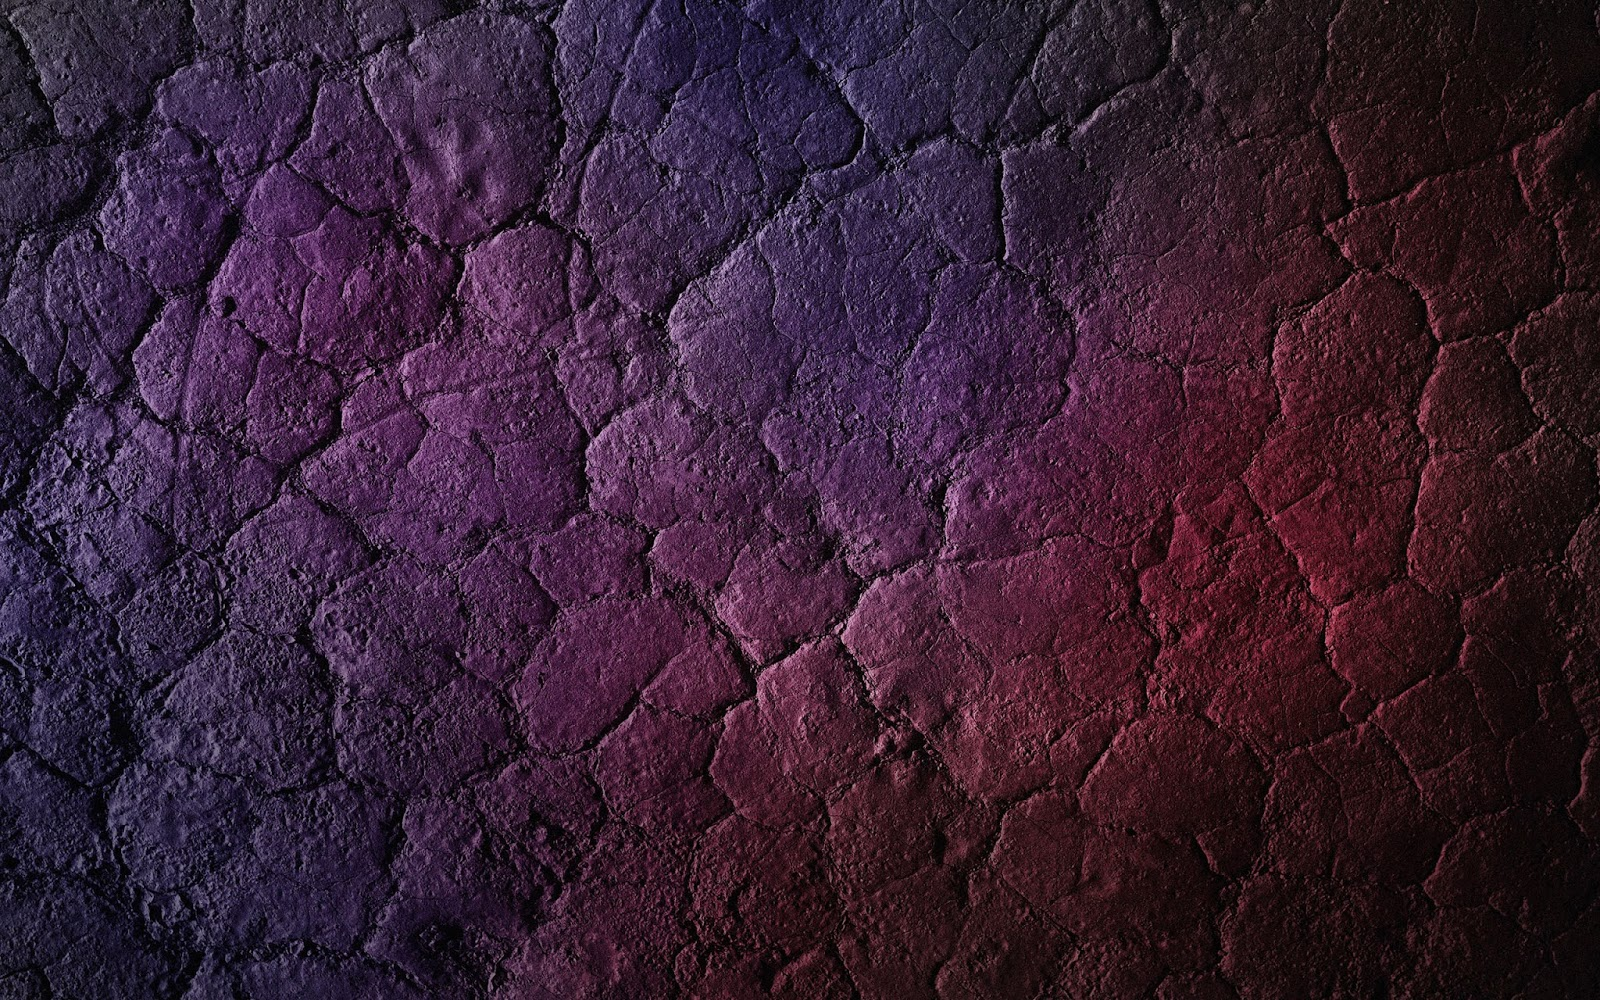 dark-textured-background-pattern-picture-template-for-wordpress-blogger.jpg